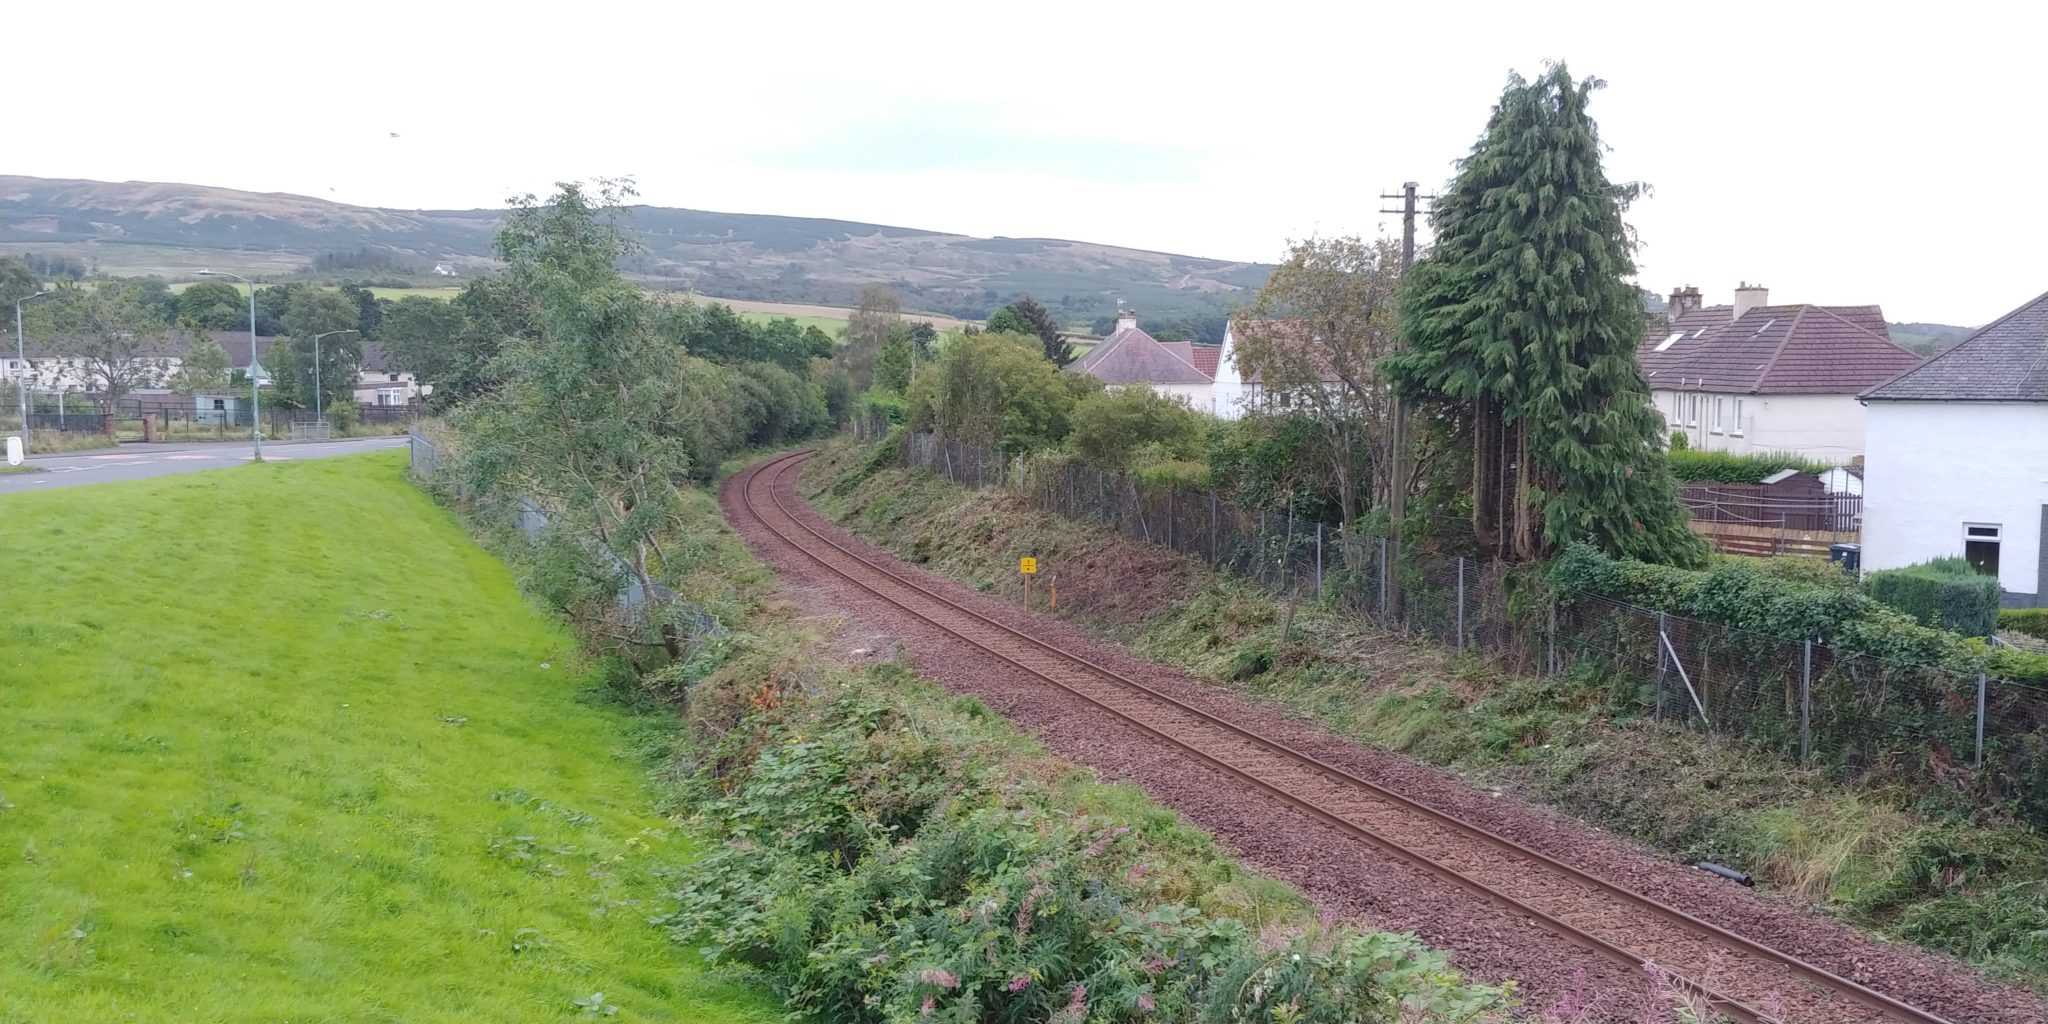 The devastation caused by Network Rail's tree-felling activities